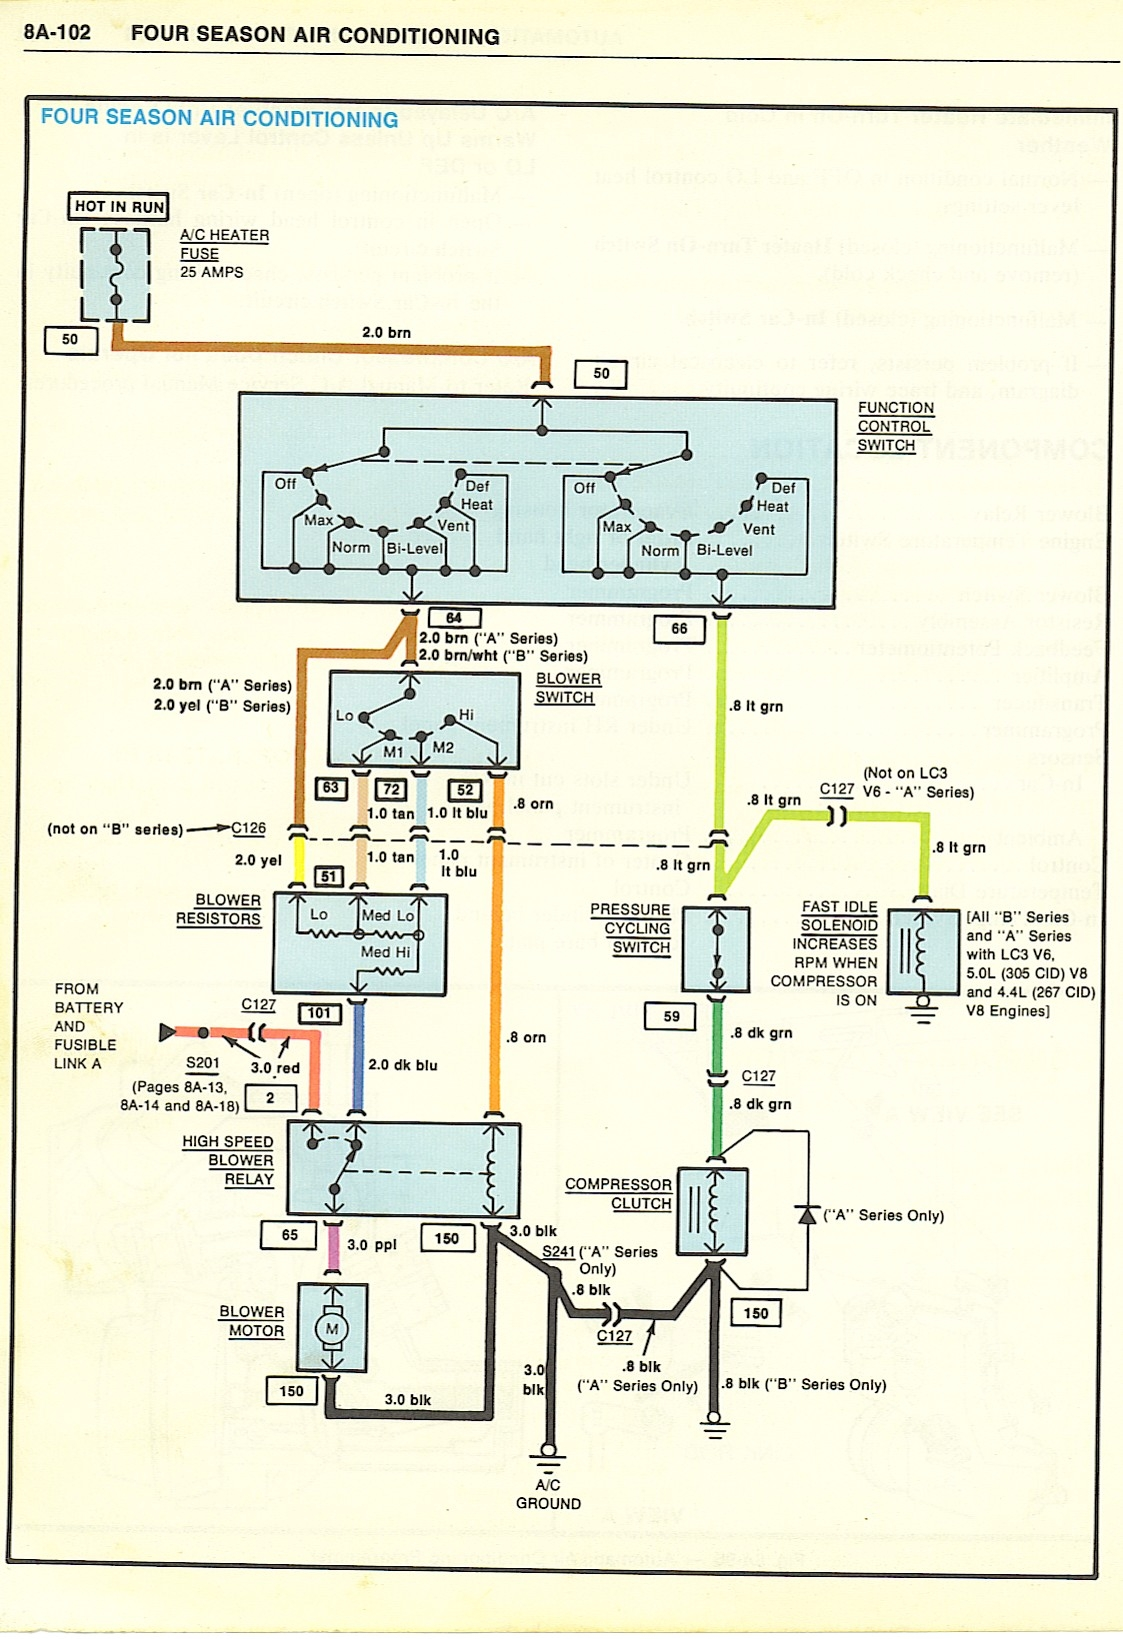 1968 FourSeasonAirConditioner chevy diagrams 1980 corvette wiring diagram at mifinder.co